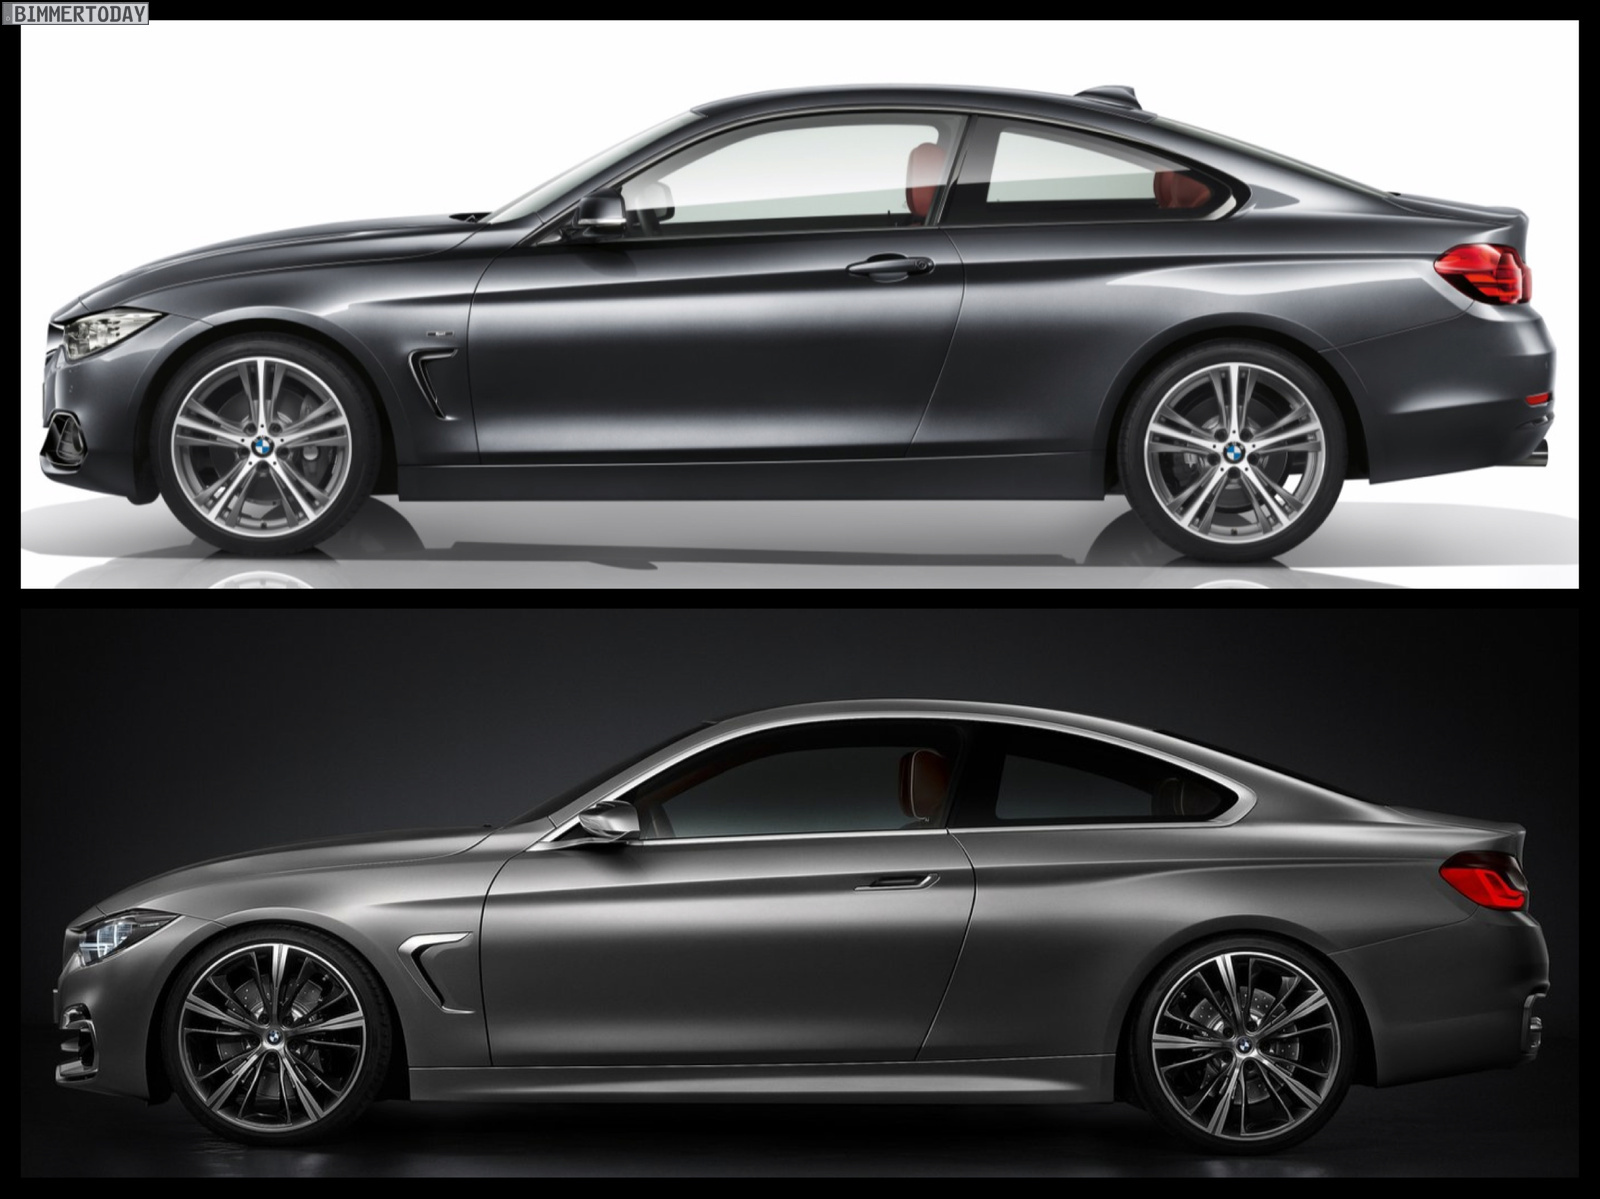 bmw concept 4 series vs bmw 4 series coupe production photo comparison. Black Bedroom Furniture Sets. Home Design Ideas